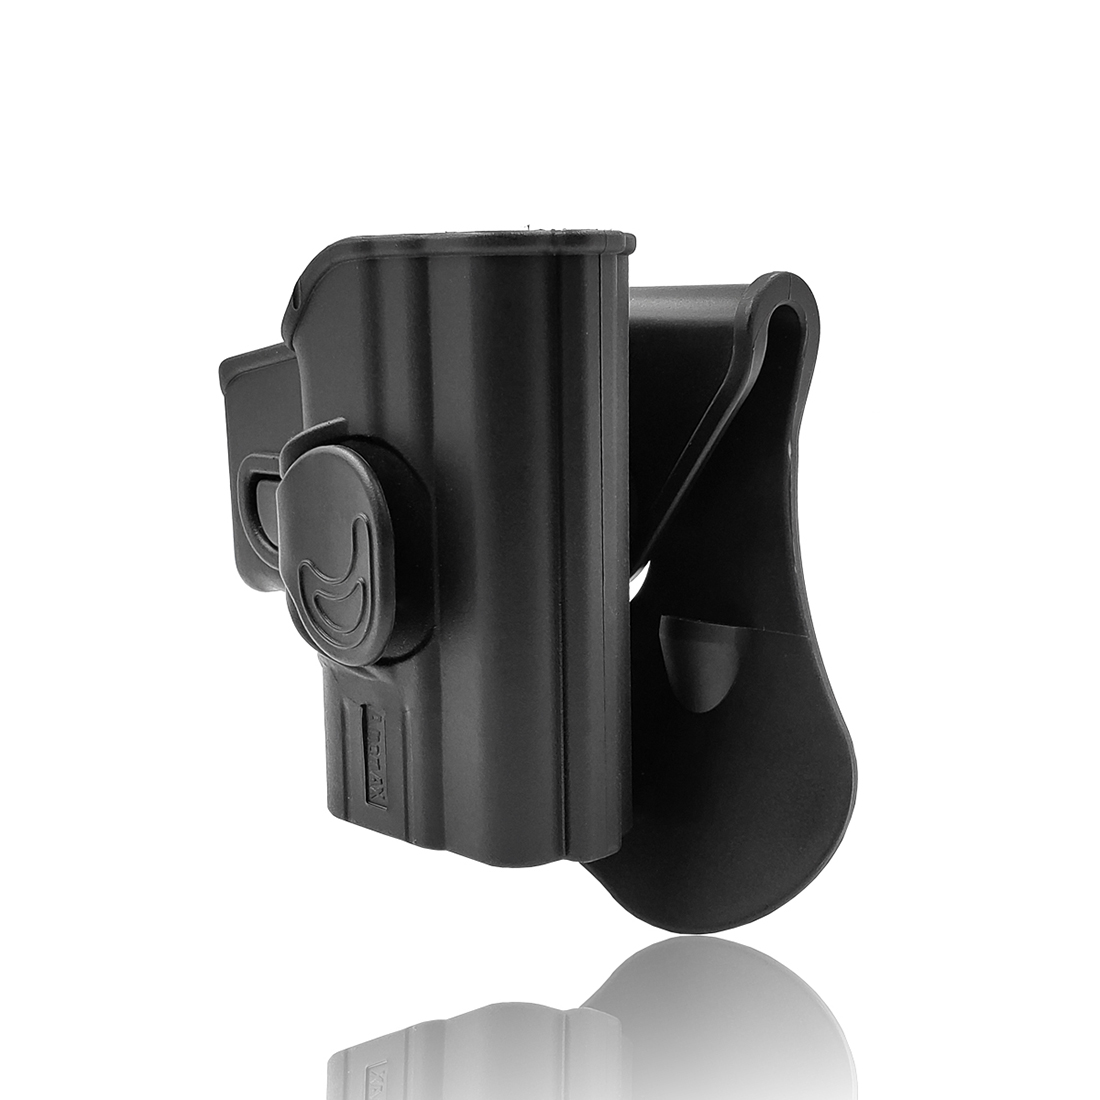 """NFSTRIKE Amomax Adjustable Tactical Holster For HS2000 (Springfield XD)/45ACP/ 9mm/SubCompact 3""""  9mm/Girsan MC28 - Right-Handed"""